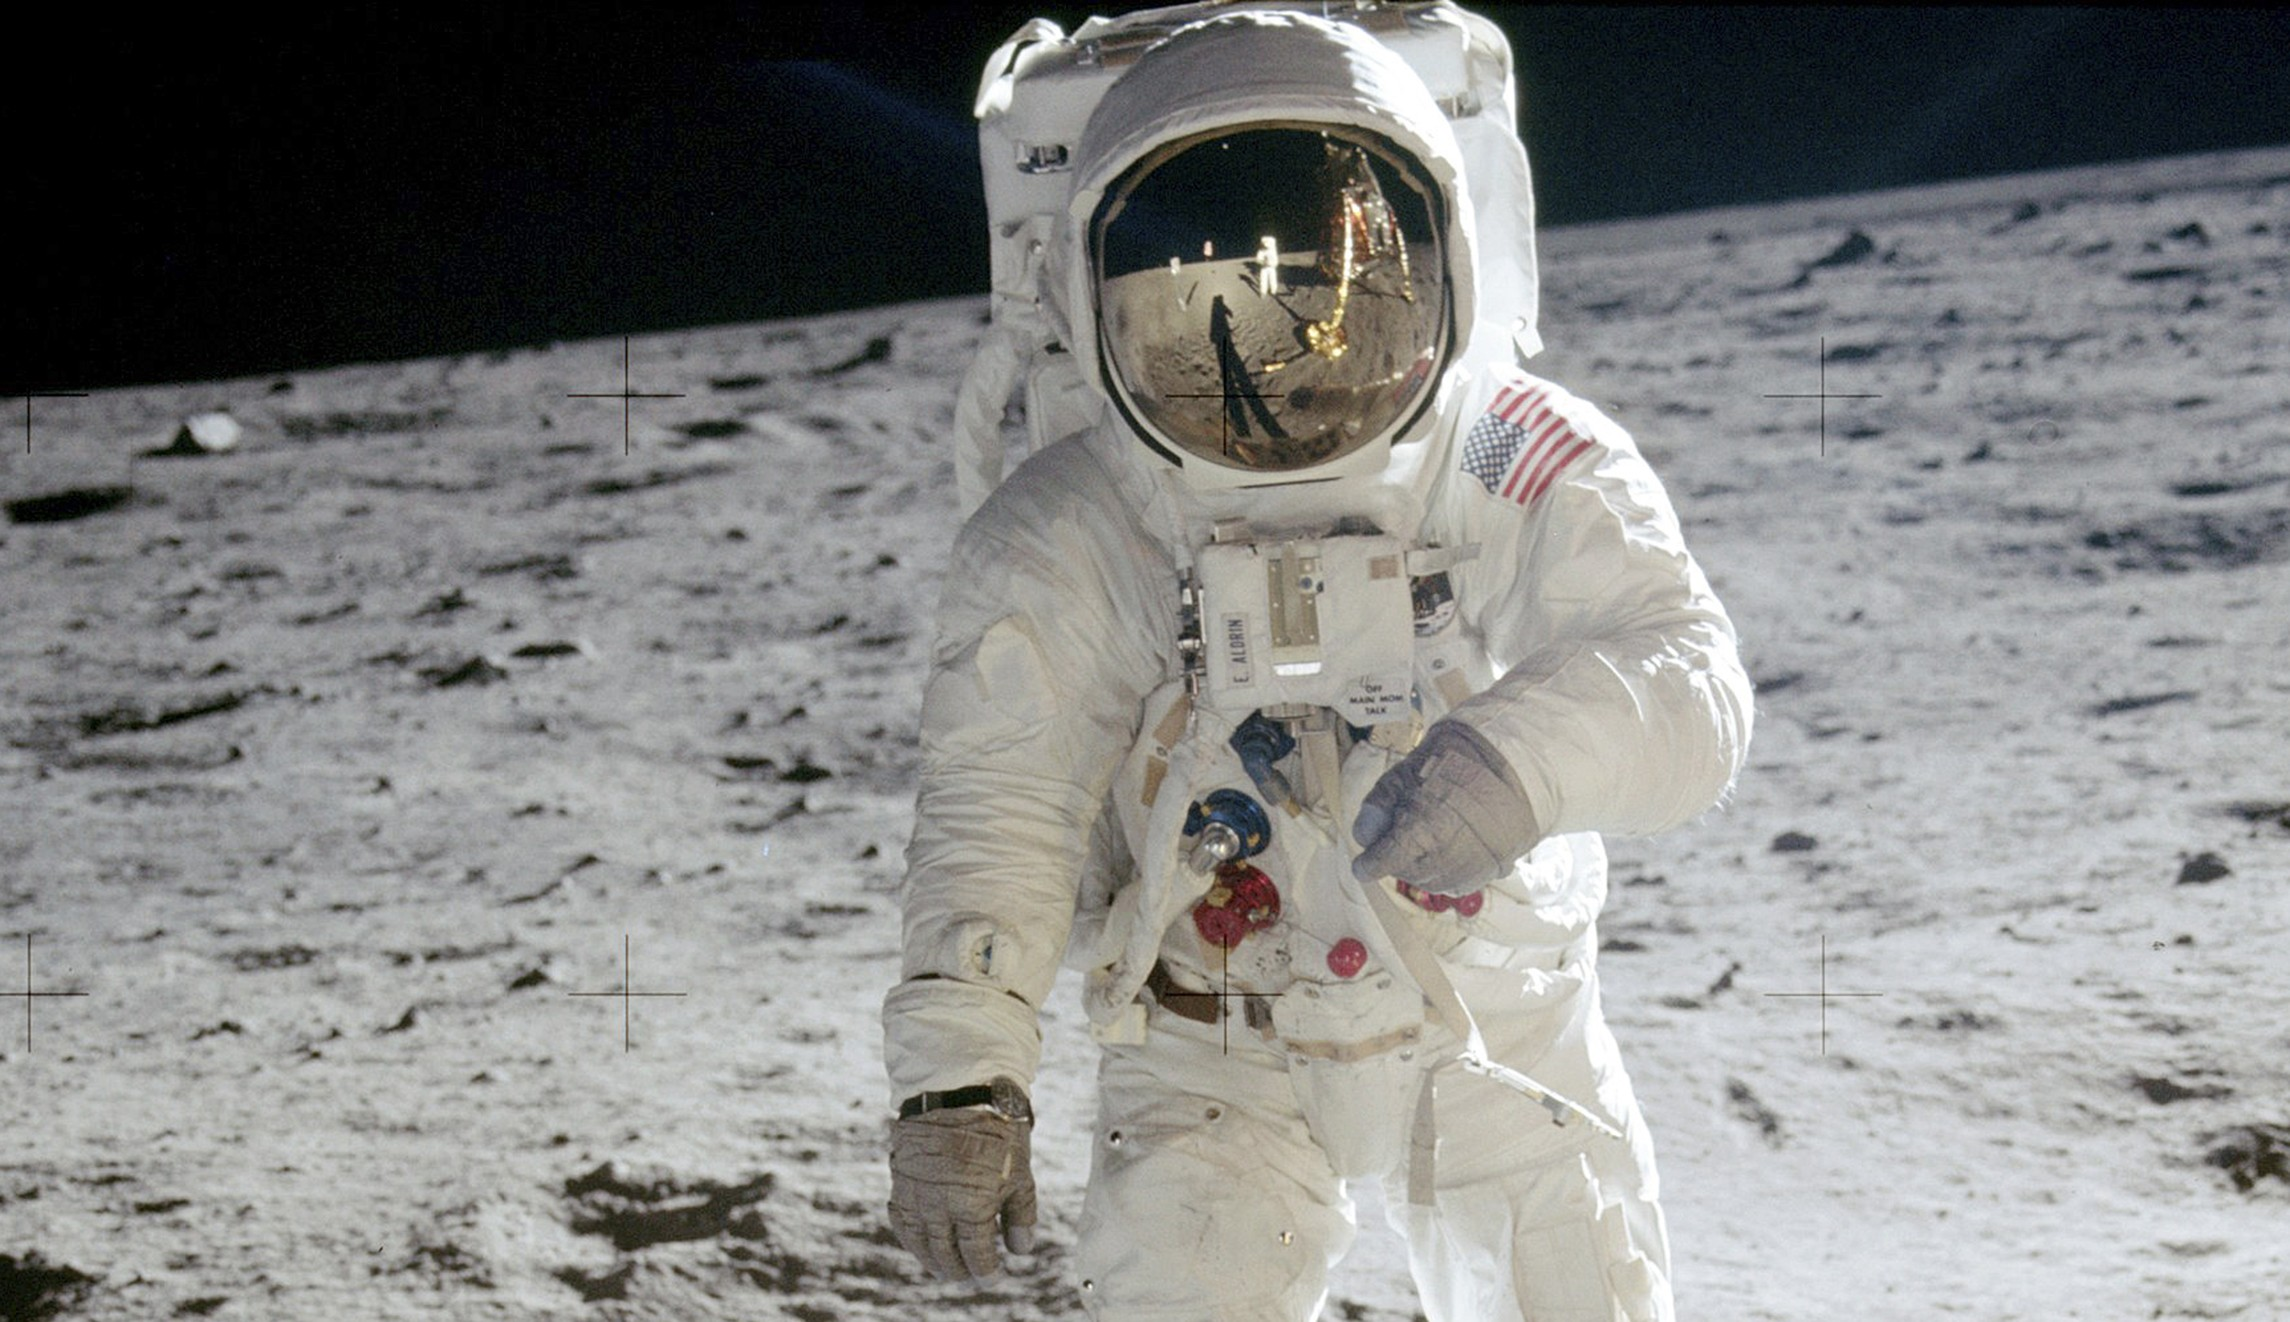 Trump to send US astronauts 'back to the moon'